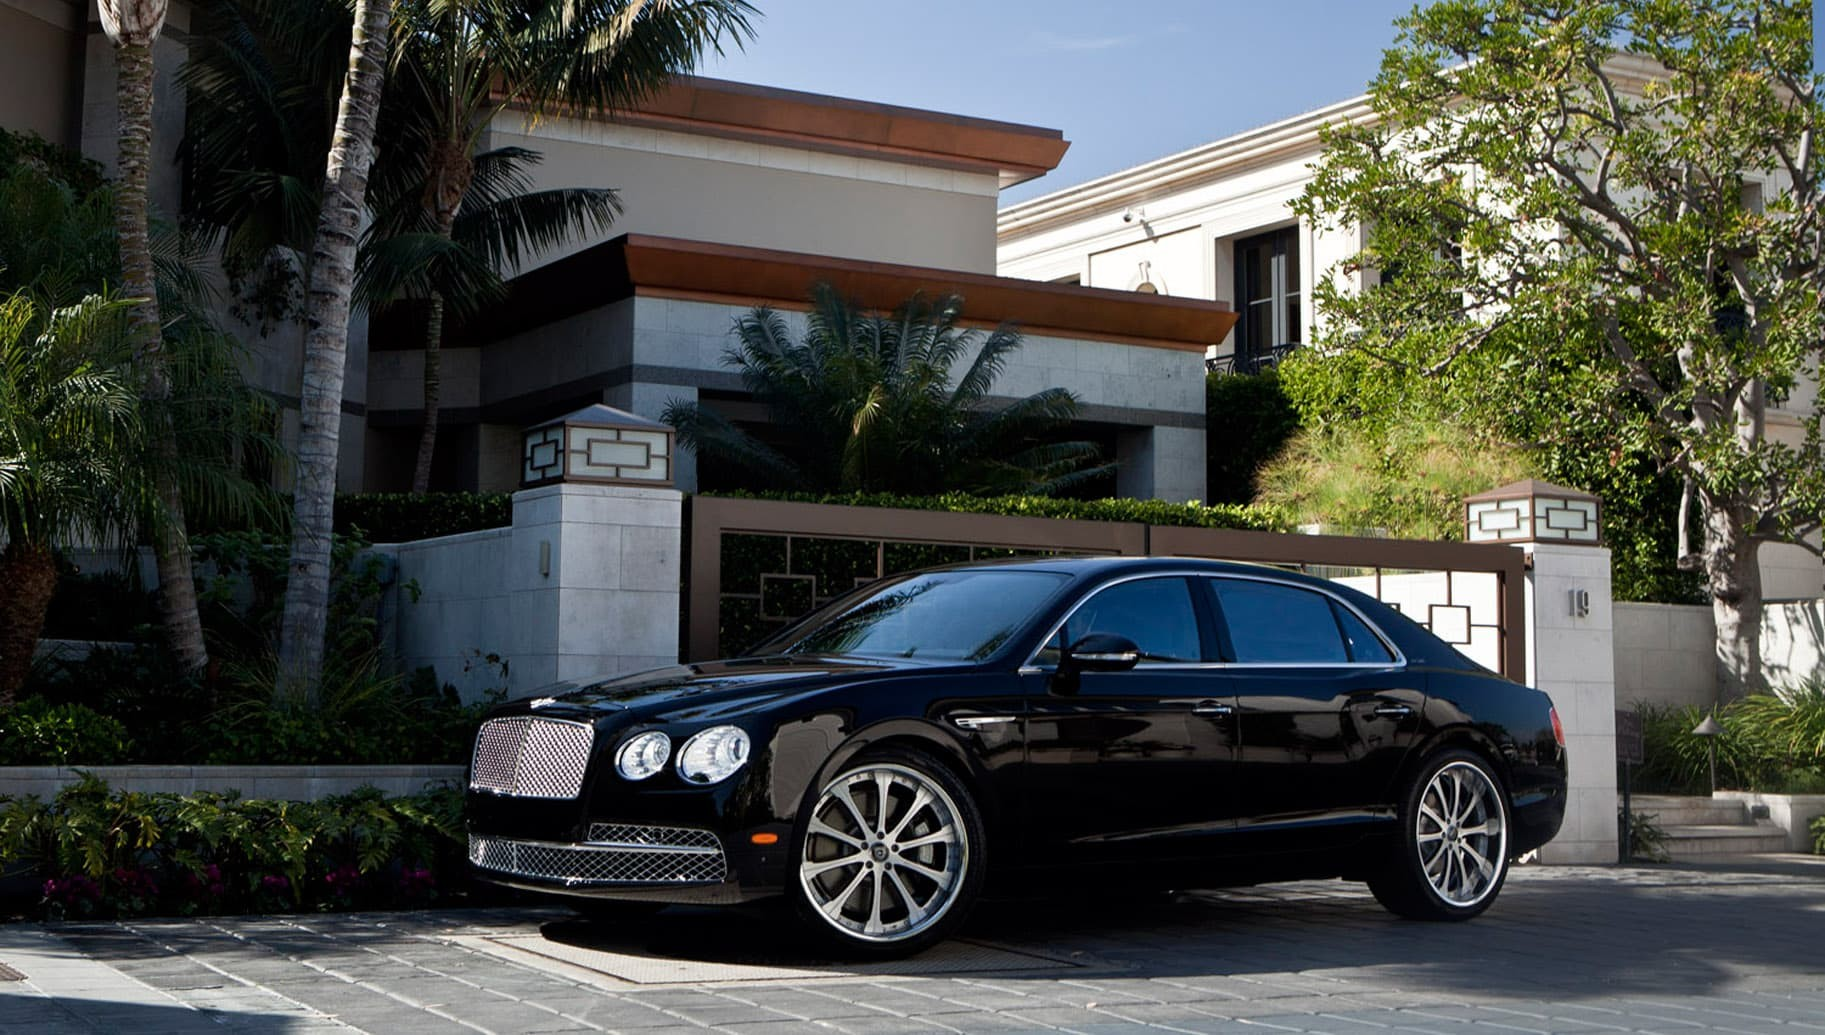 Custom LF-707 on the Bentley Flying Spur.